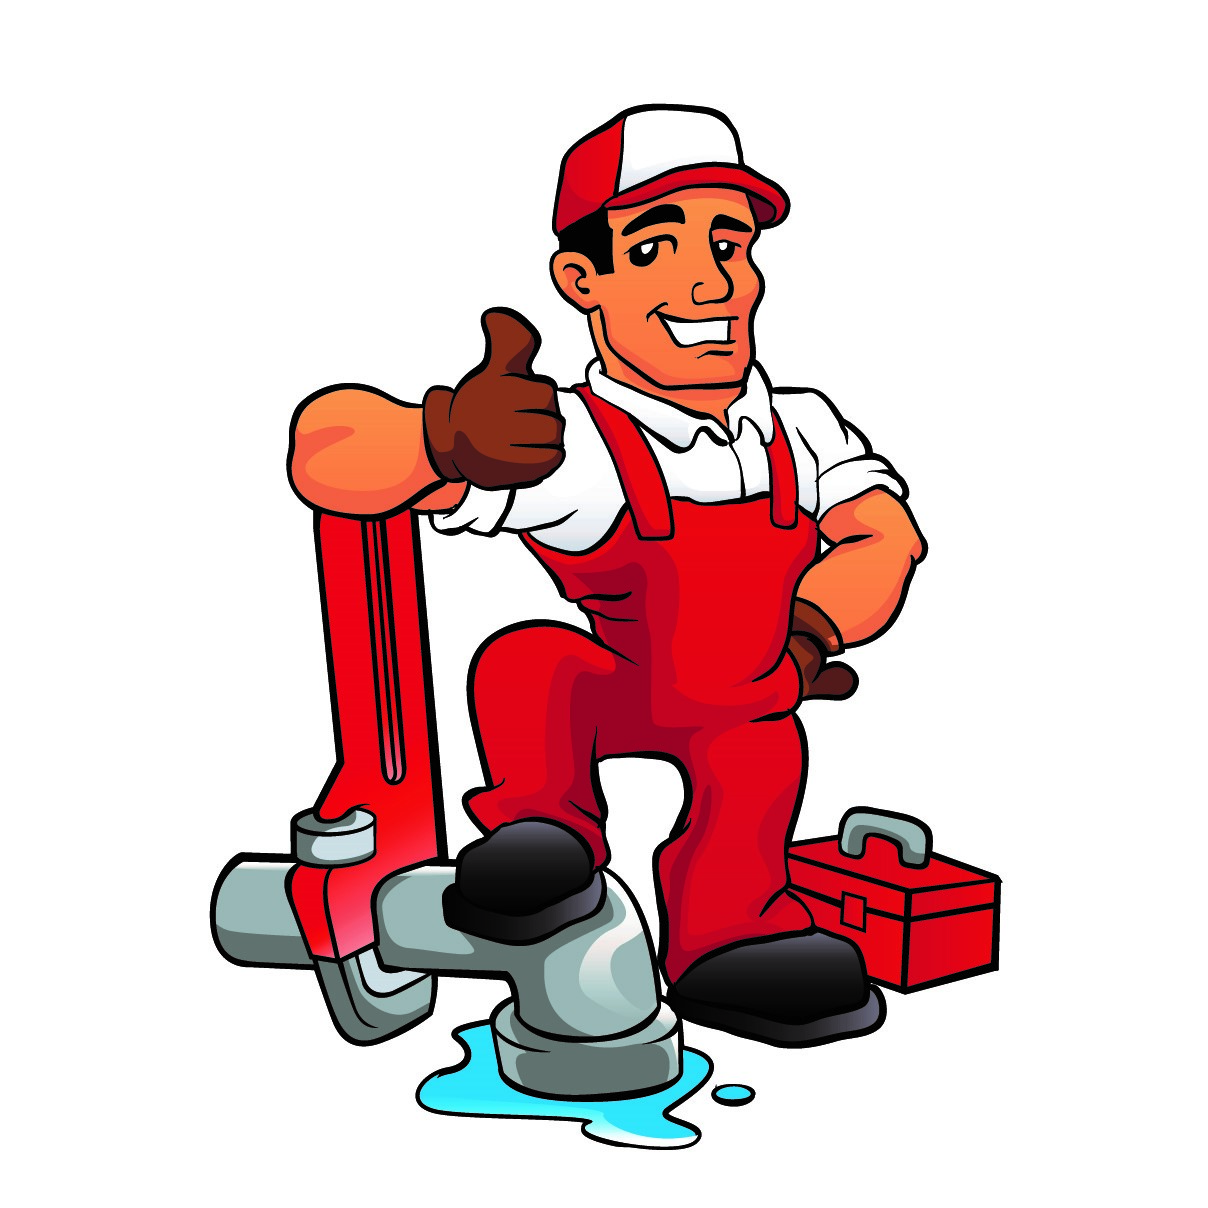 Plumber clipart. Posts by marion met